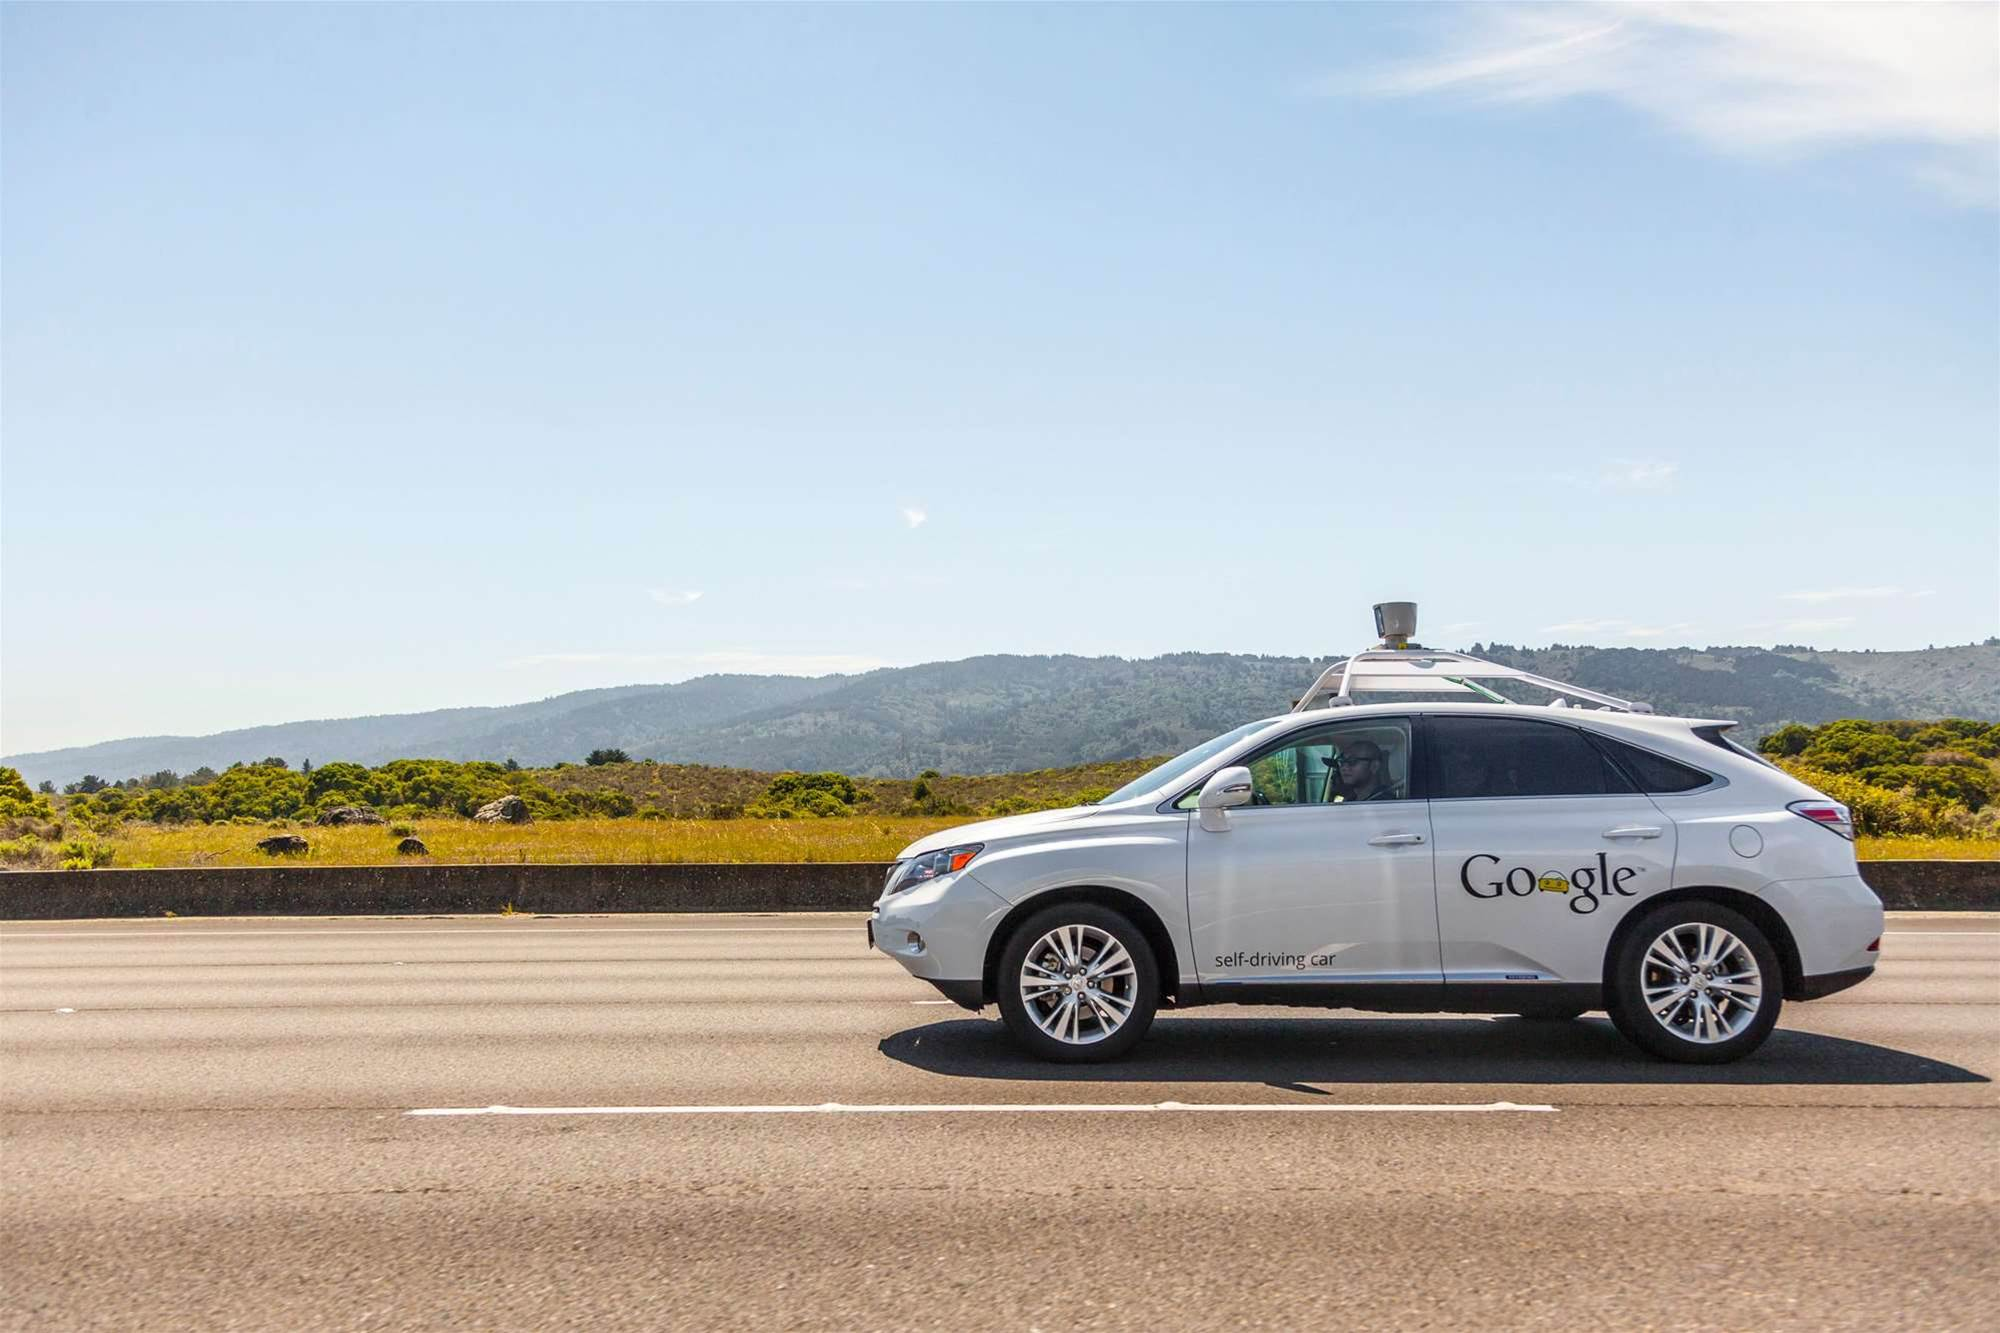 Should Google be held liable when its driverless cars crash?